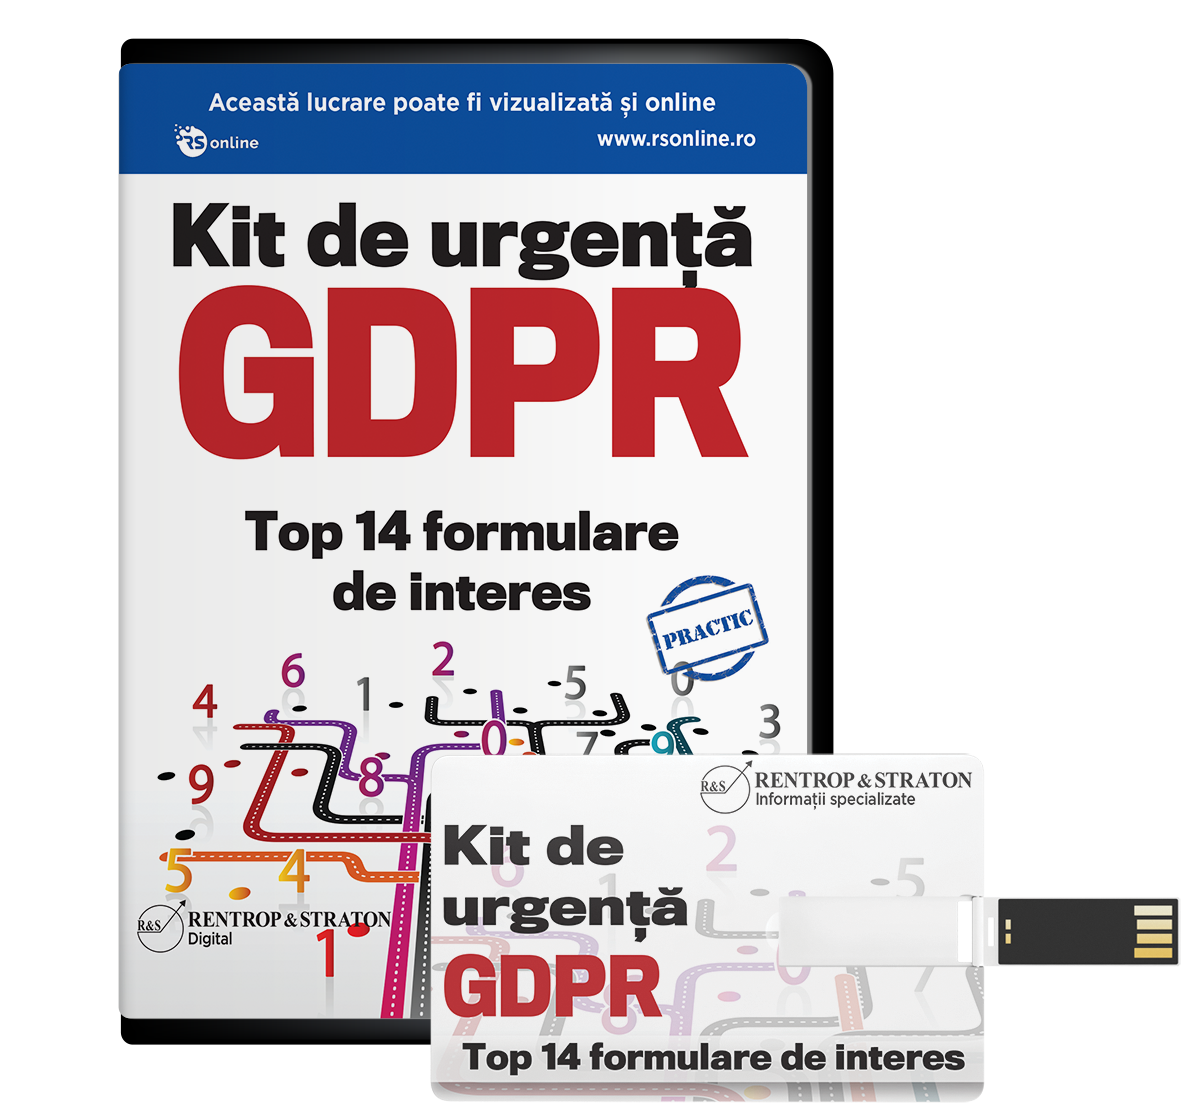 Kit de urgenta GDPR - Top 14 formulare de interes